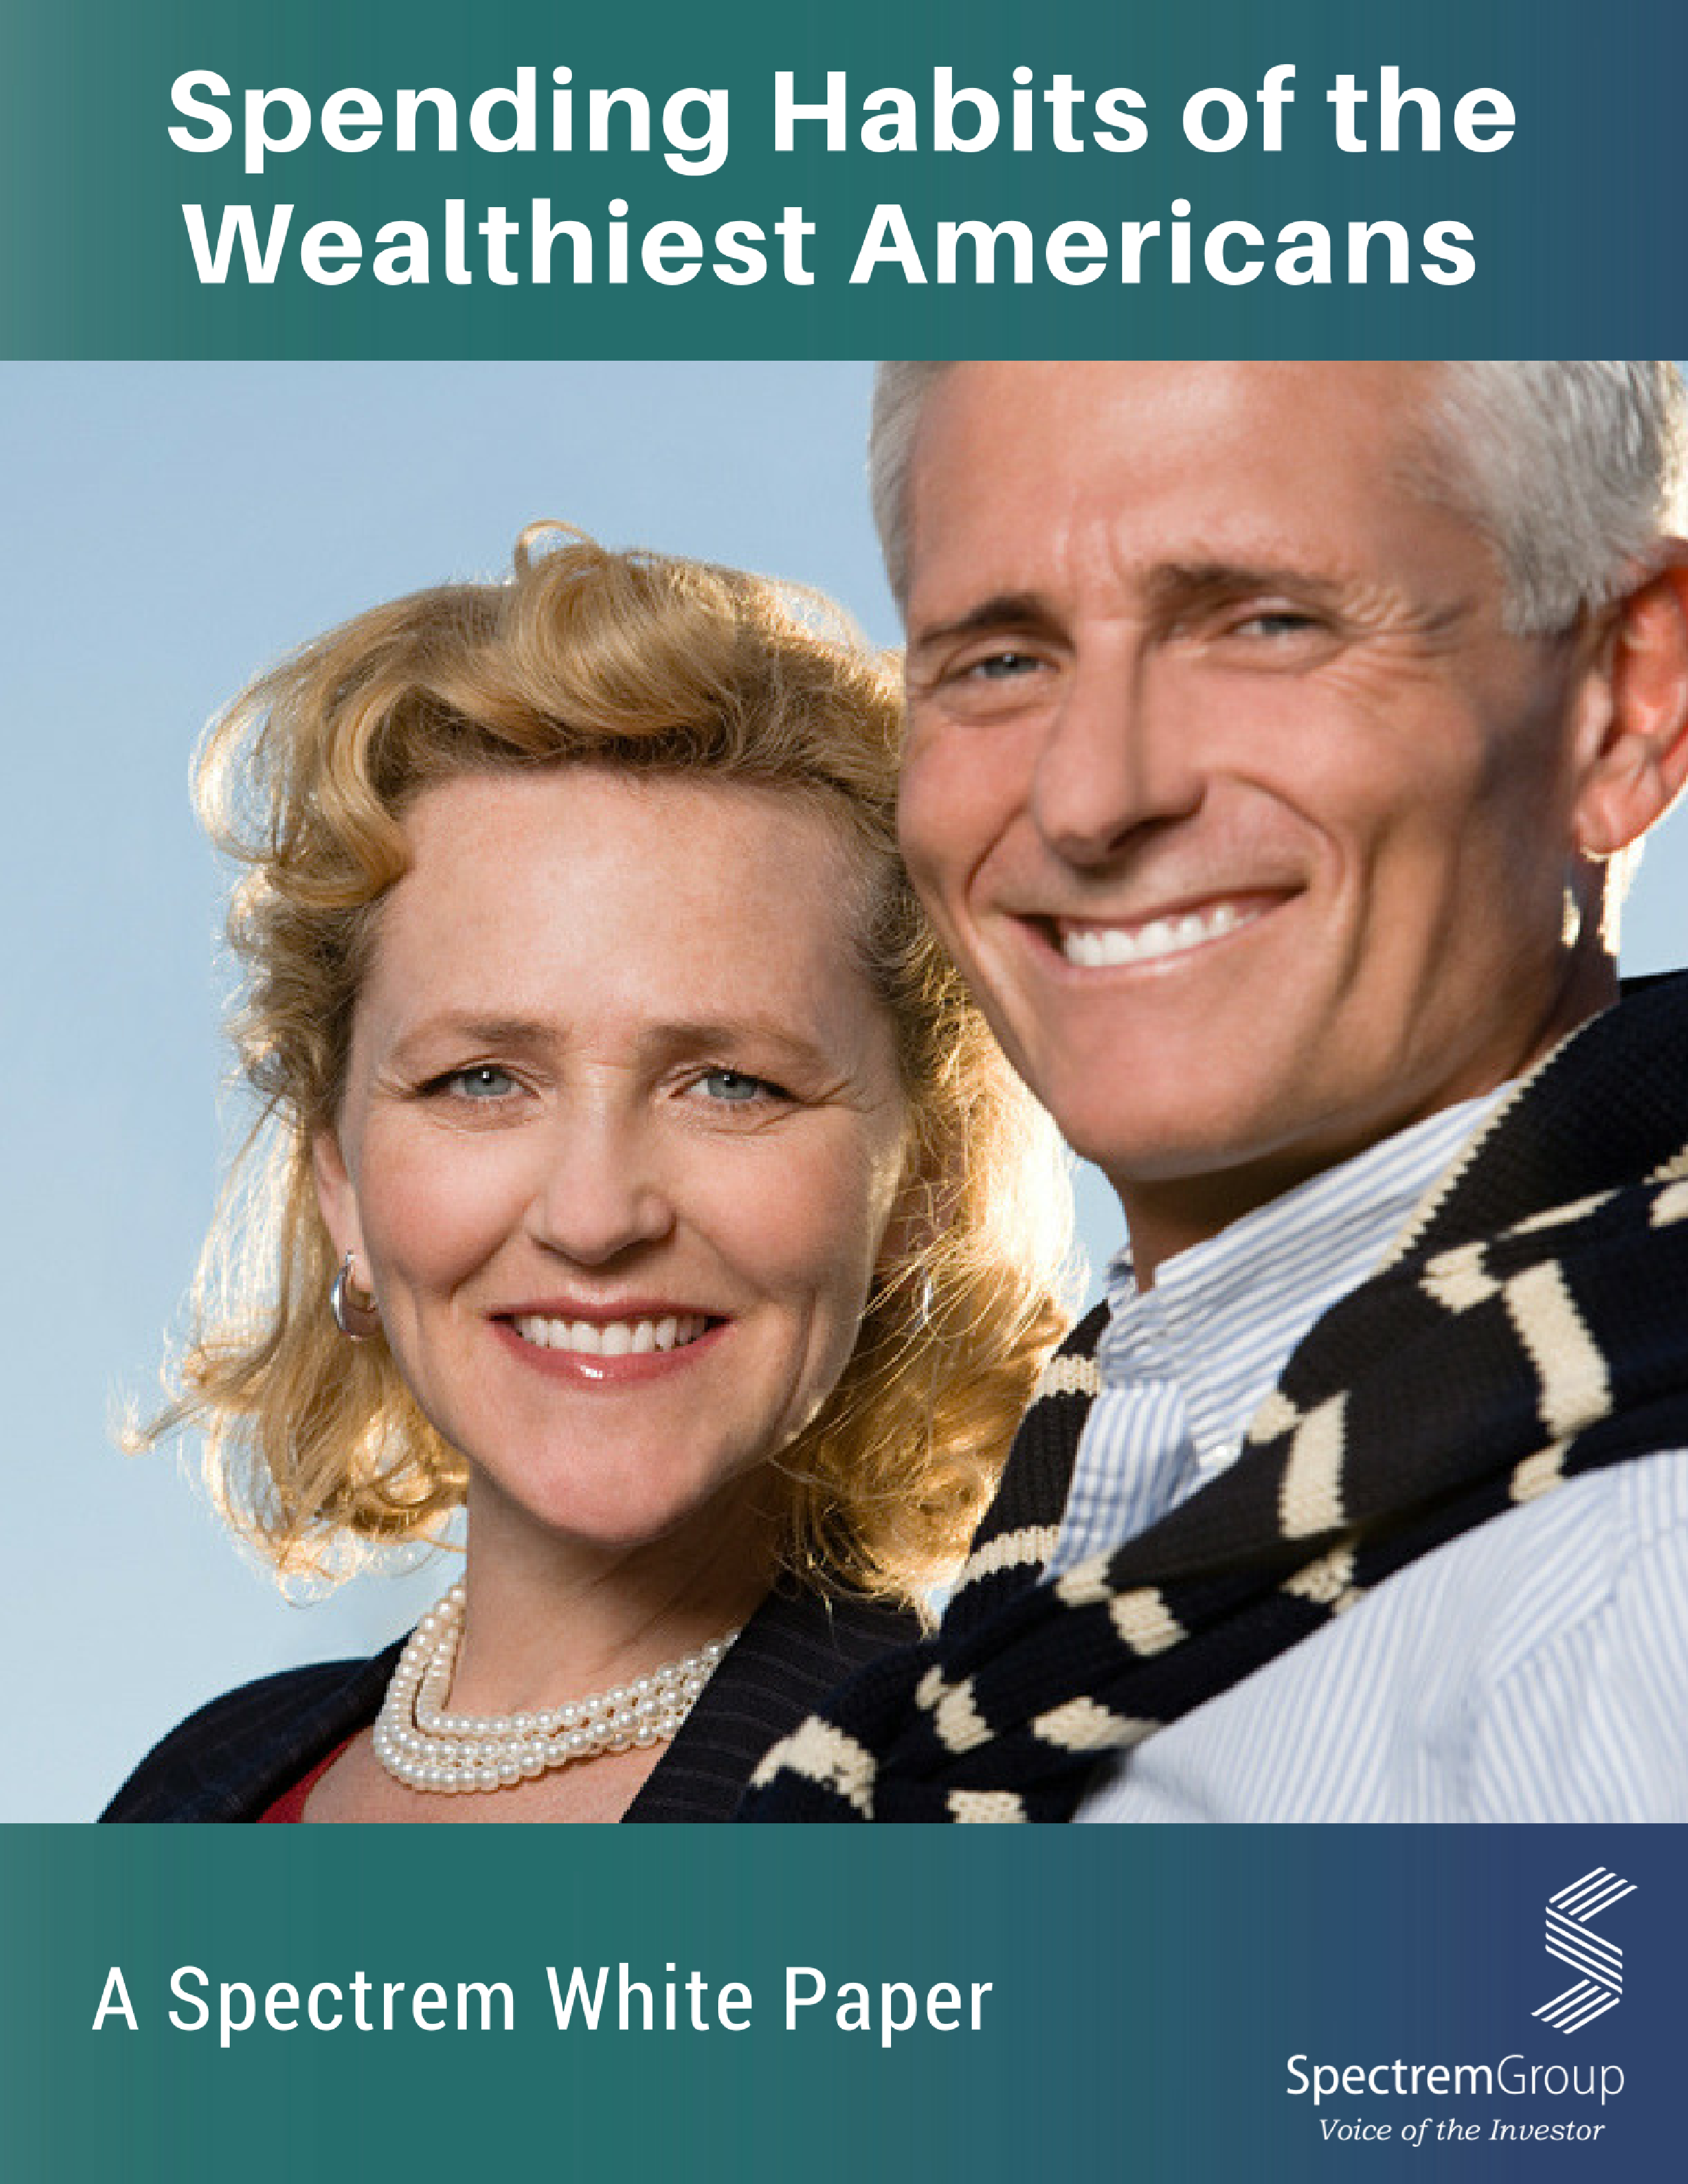 Spending Habits of the Wealthiest Americans